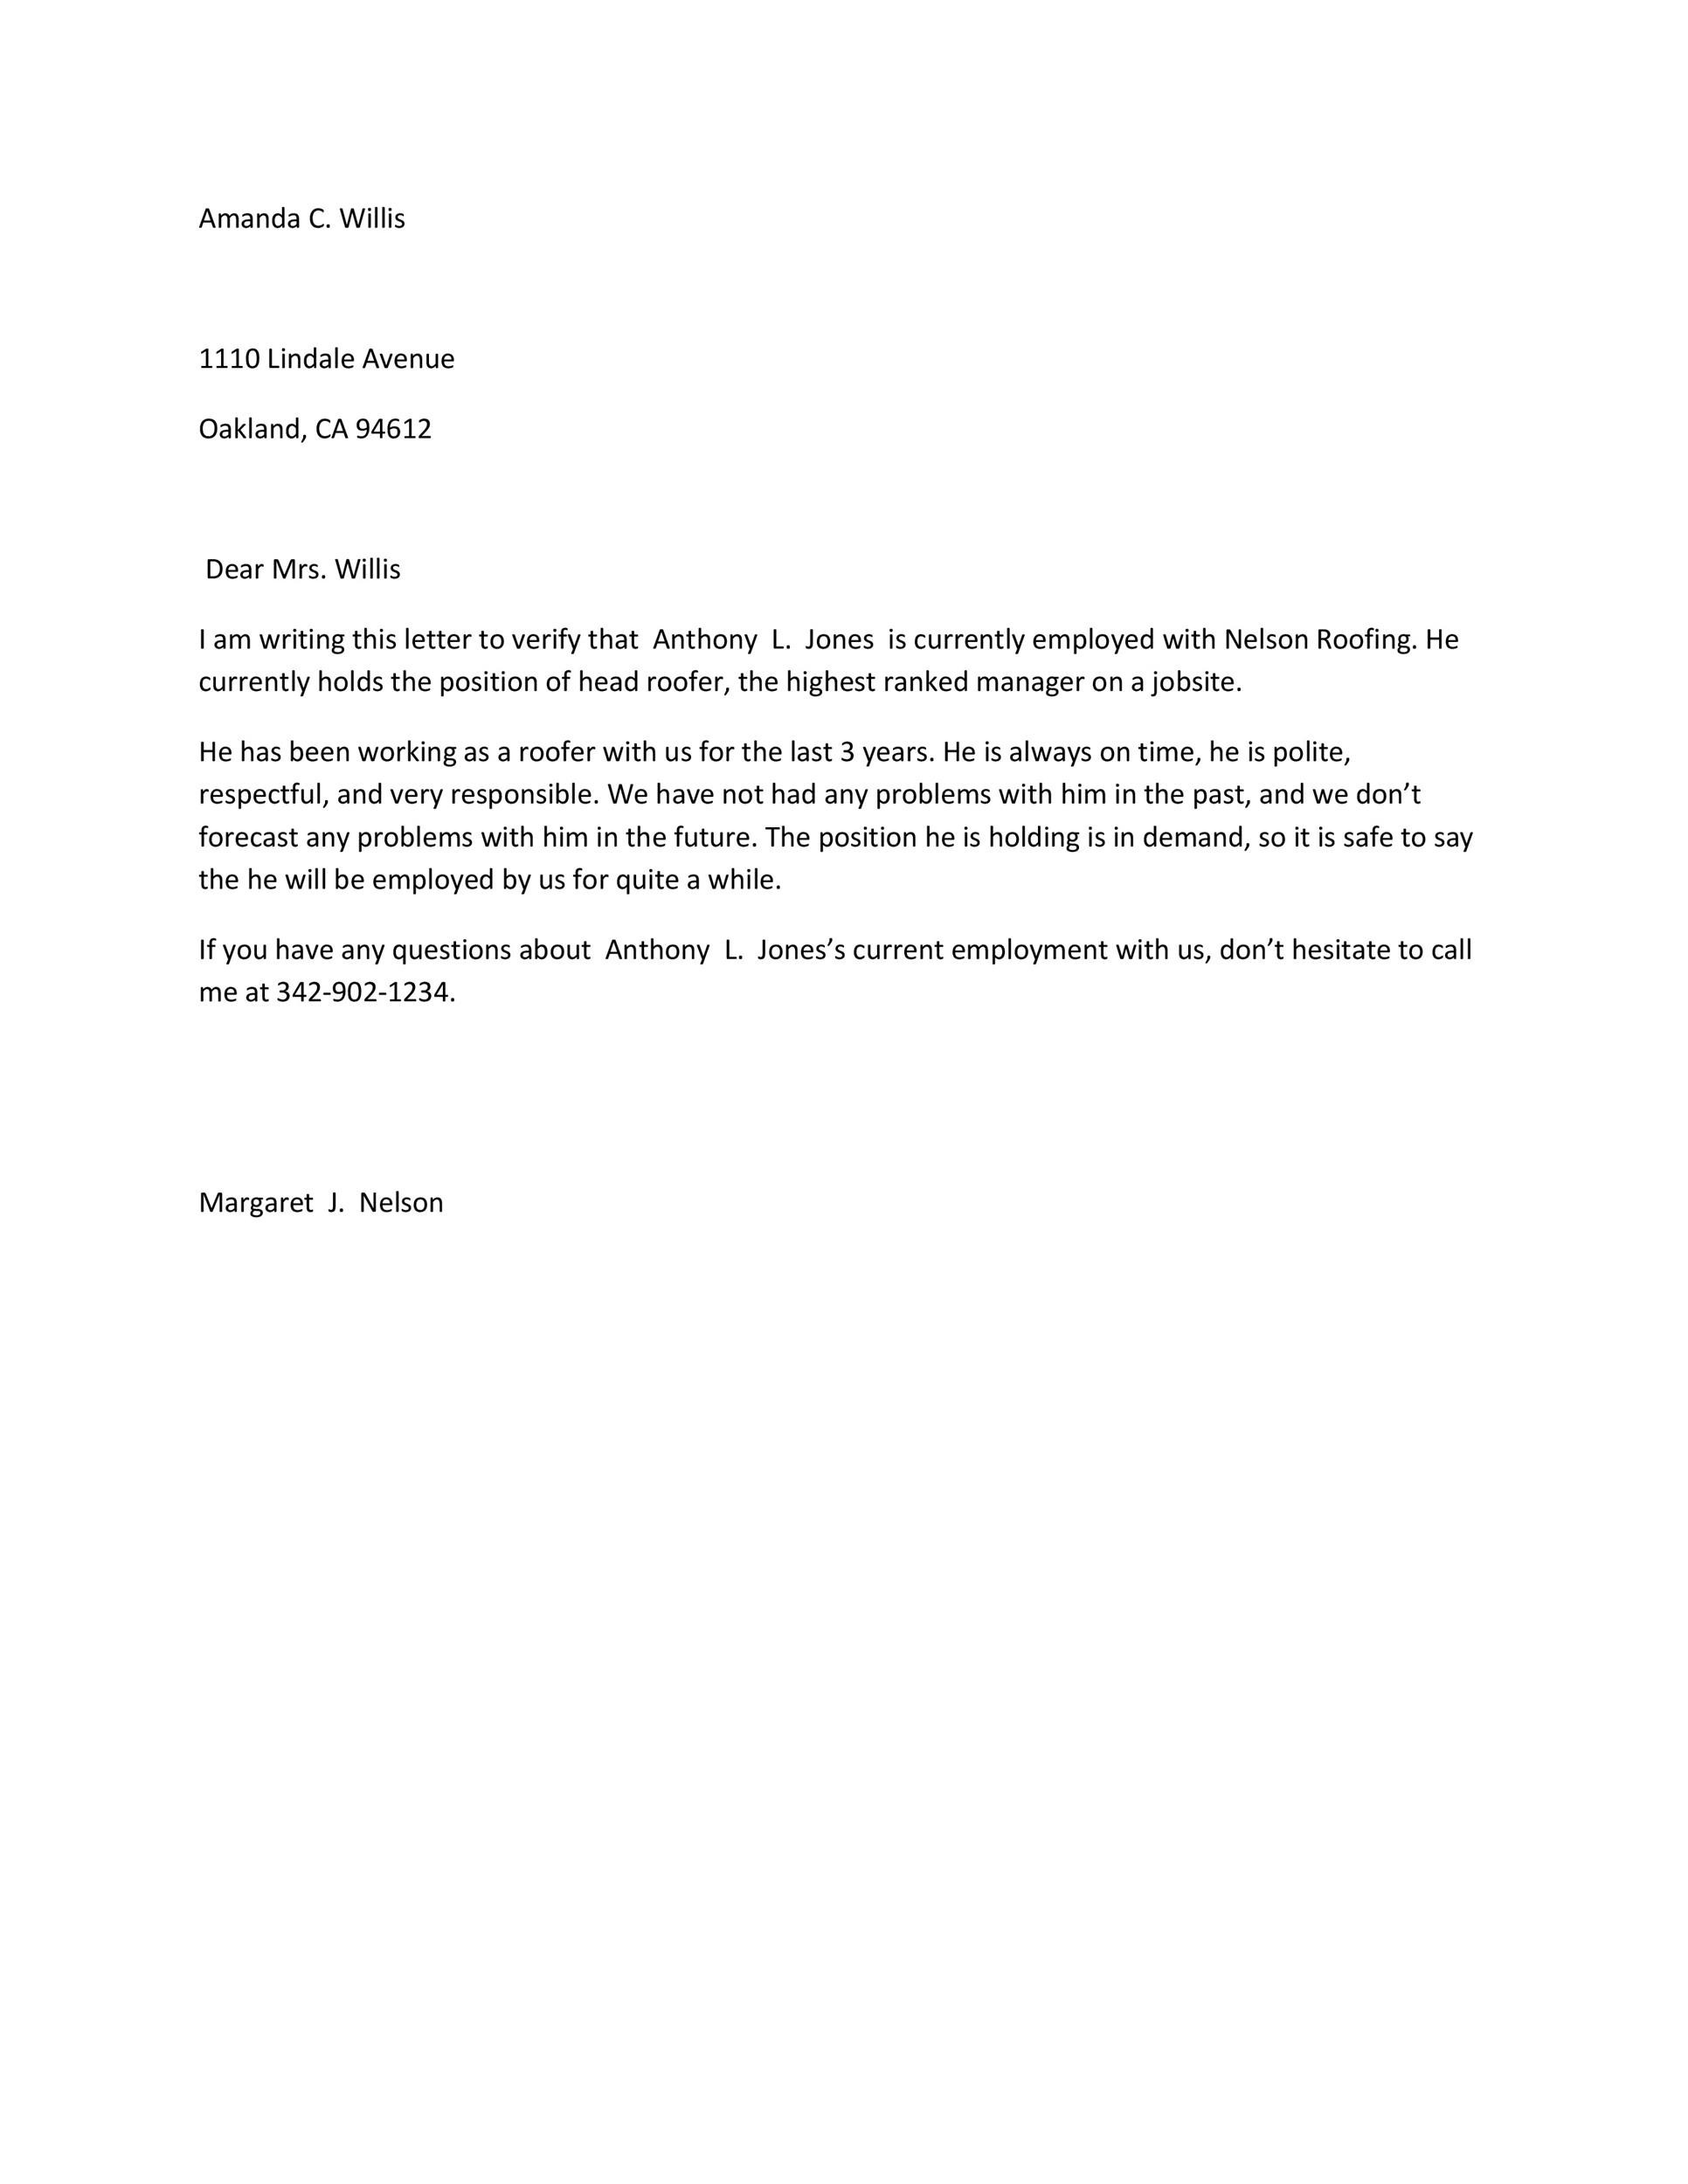 Confirmation Of Employment Letter Template  Letter Template